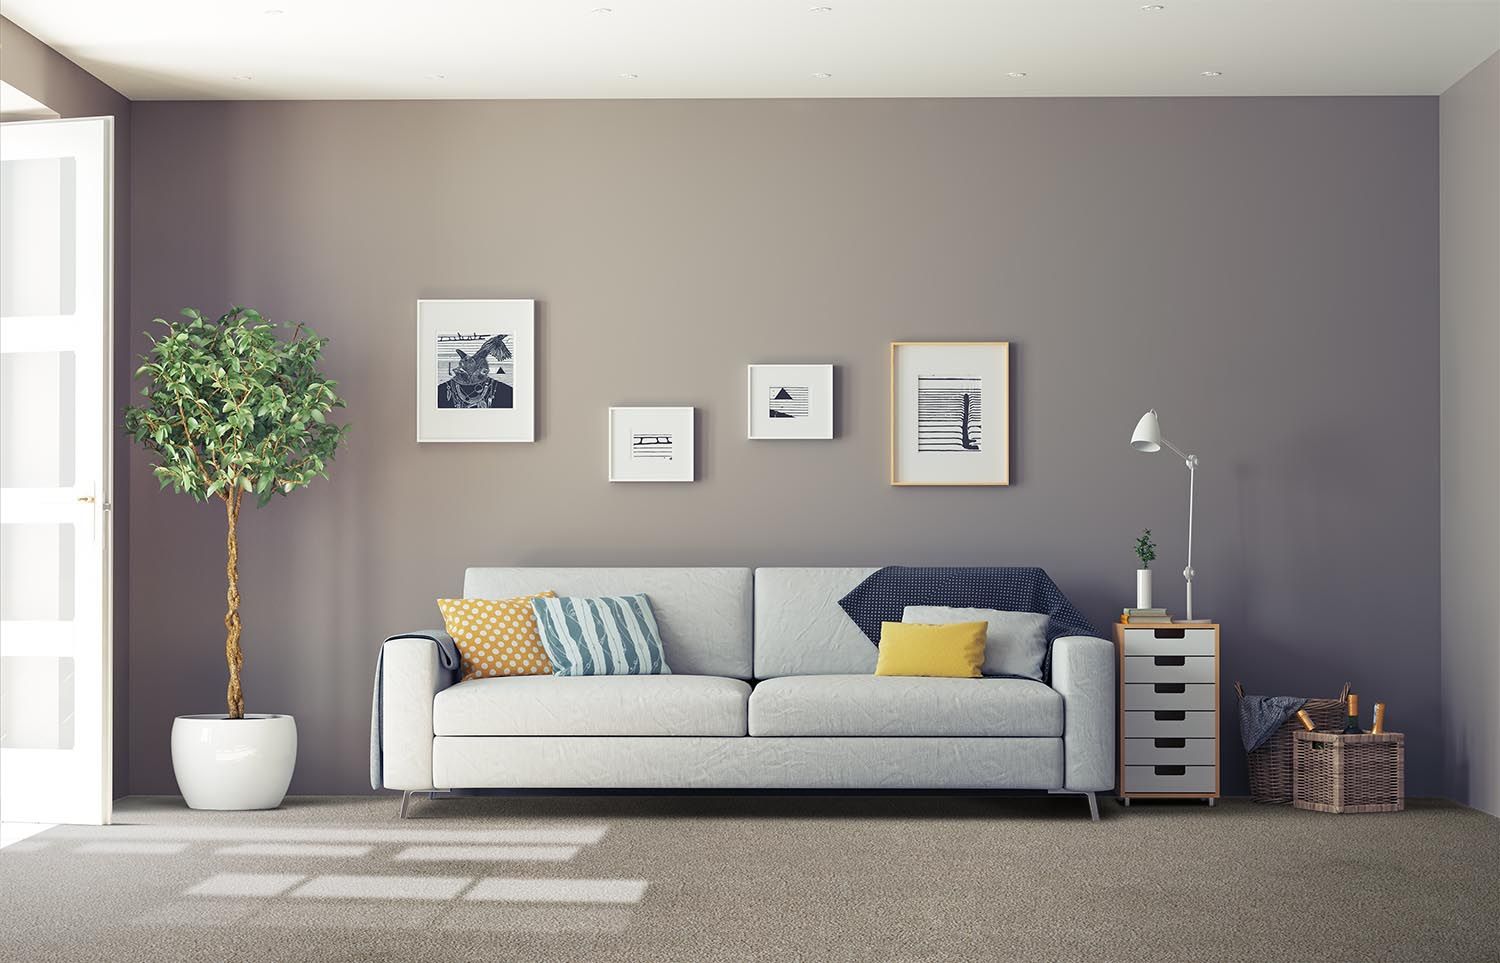 Mantra - M301 - Cocoon classic living room